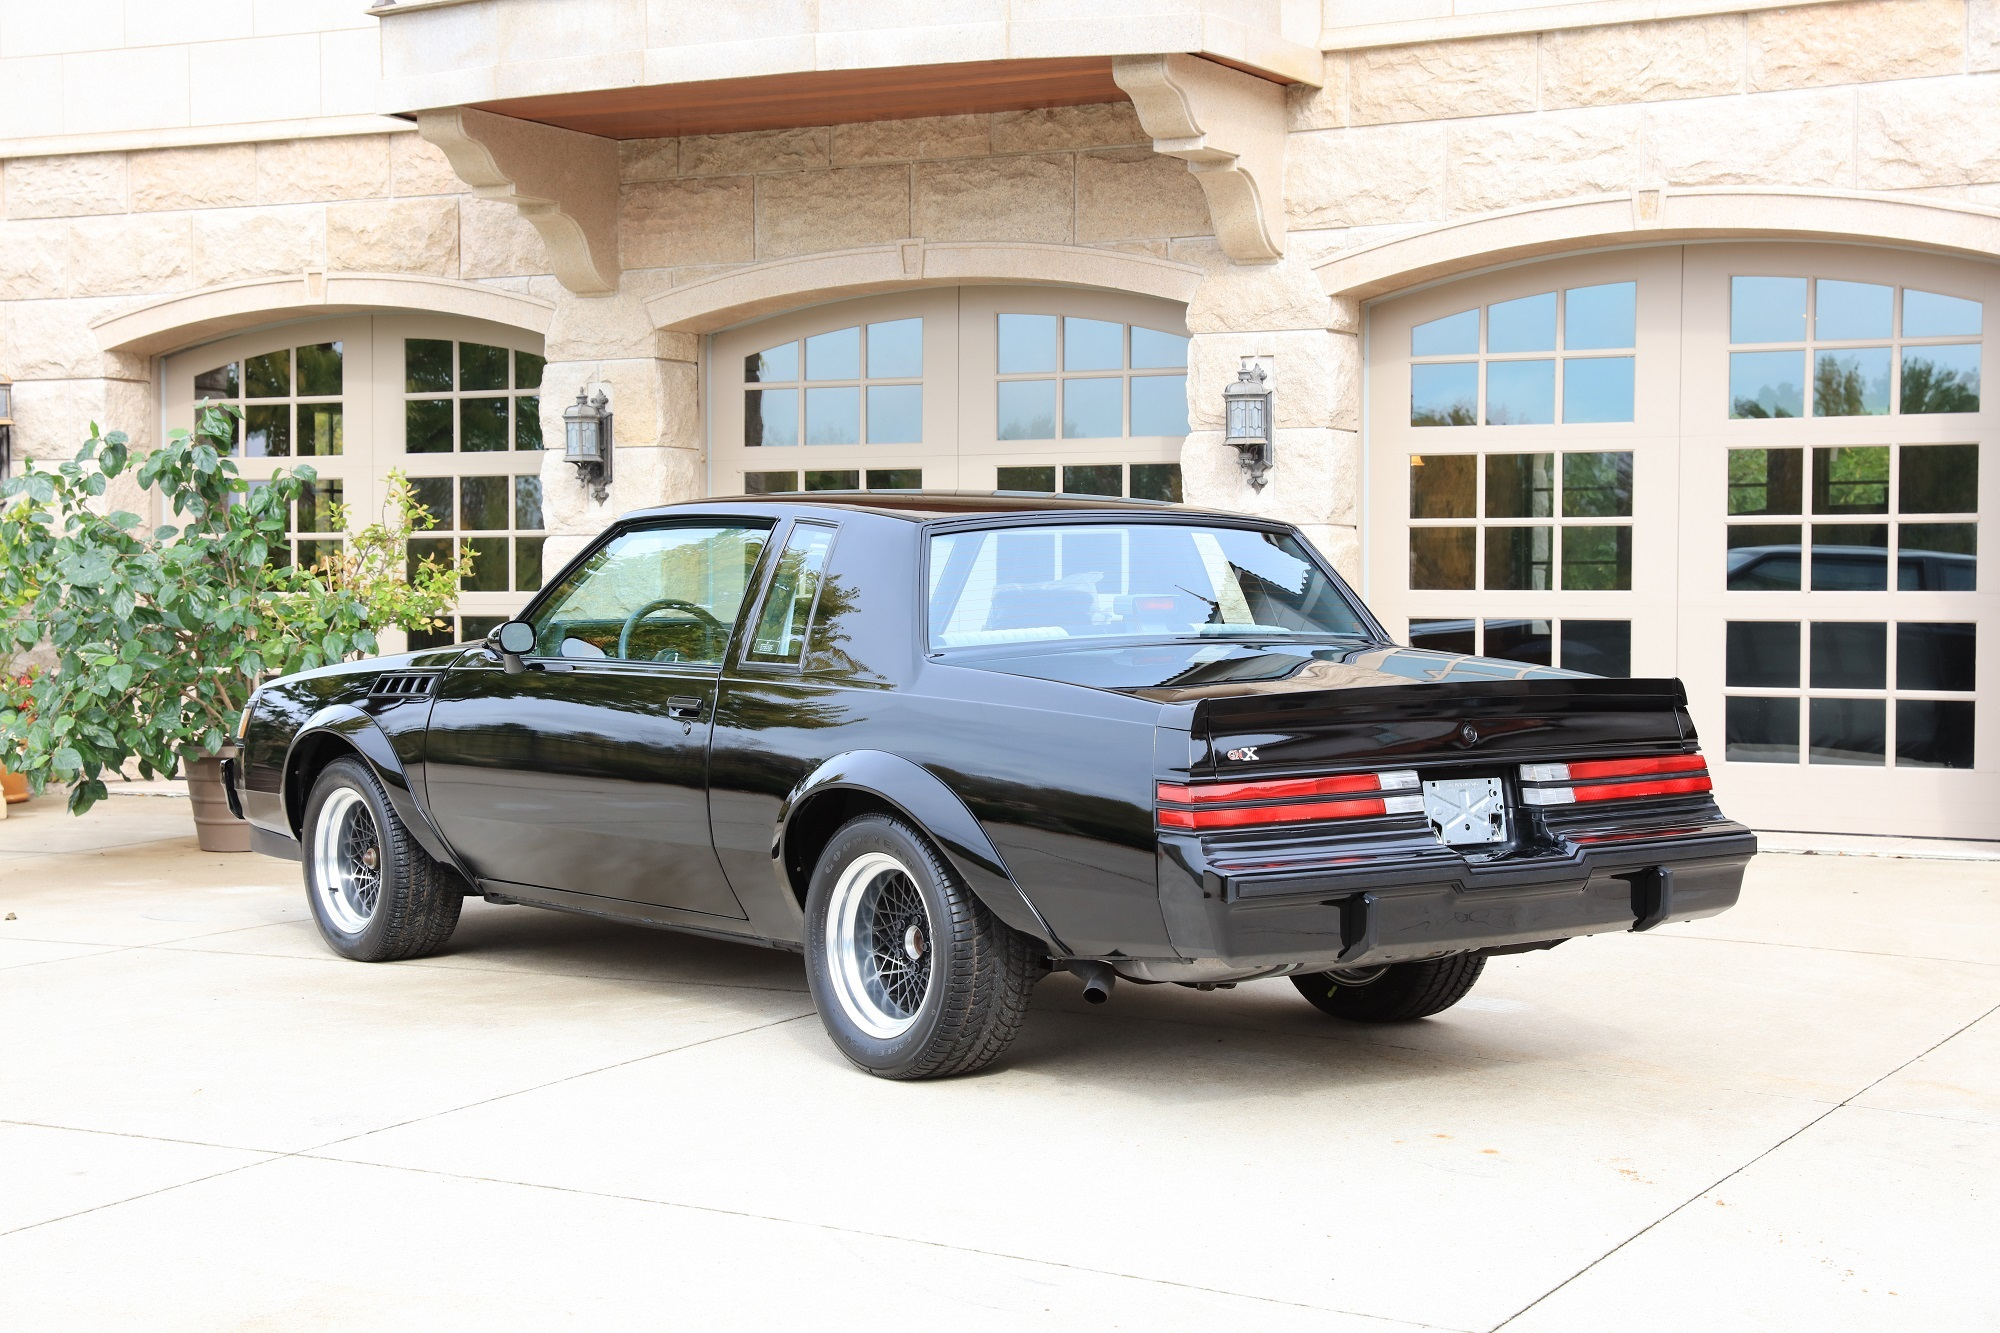 1987 Buick GNX rear 3/4